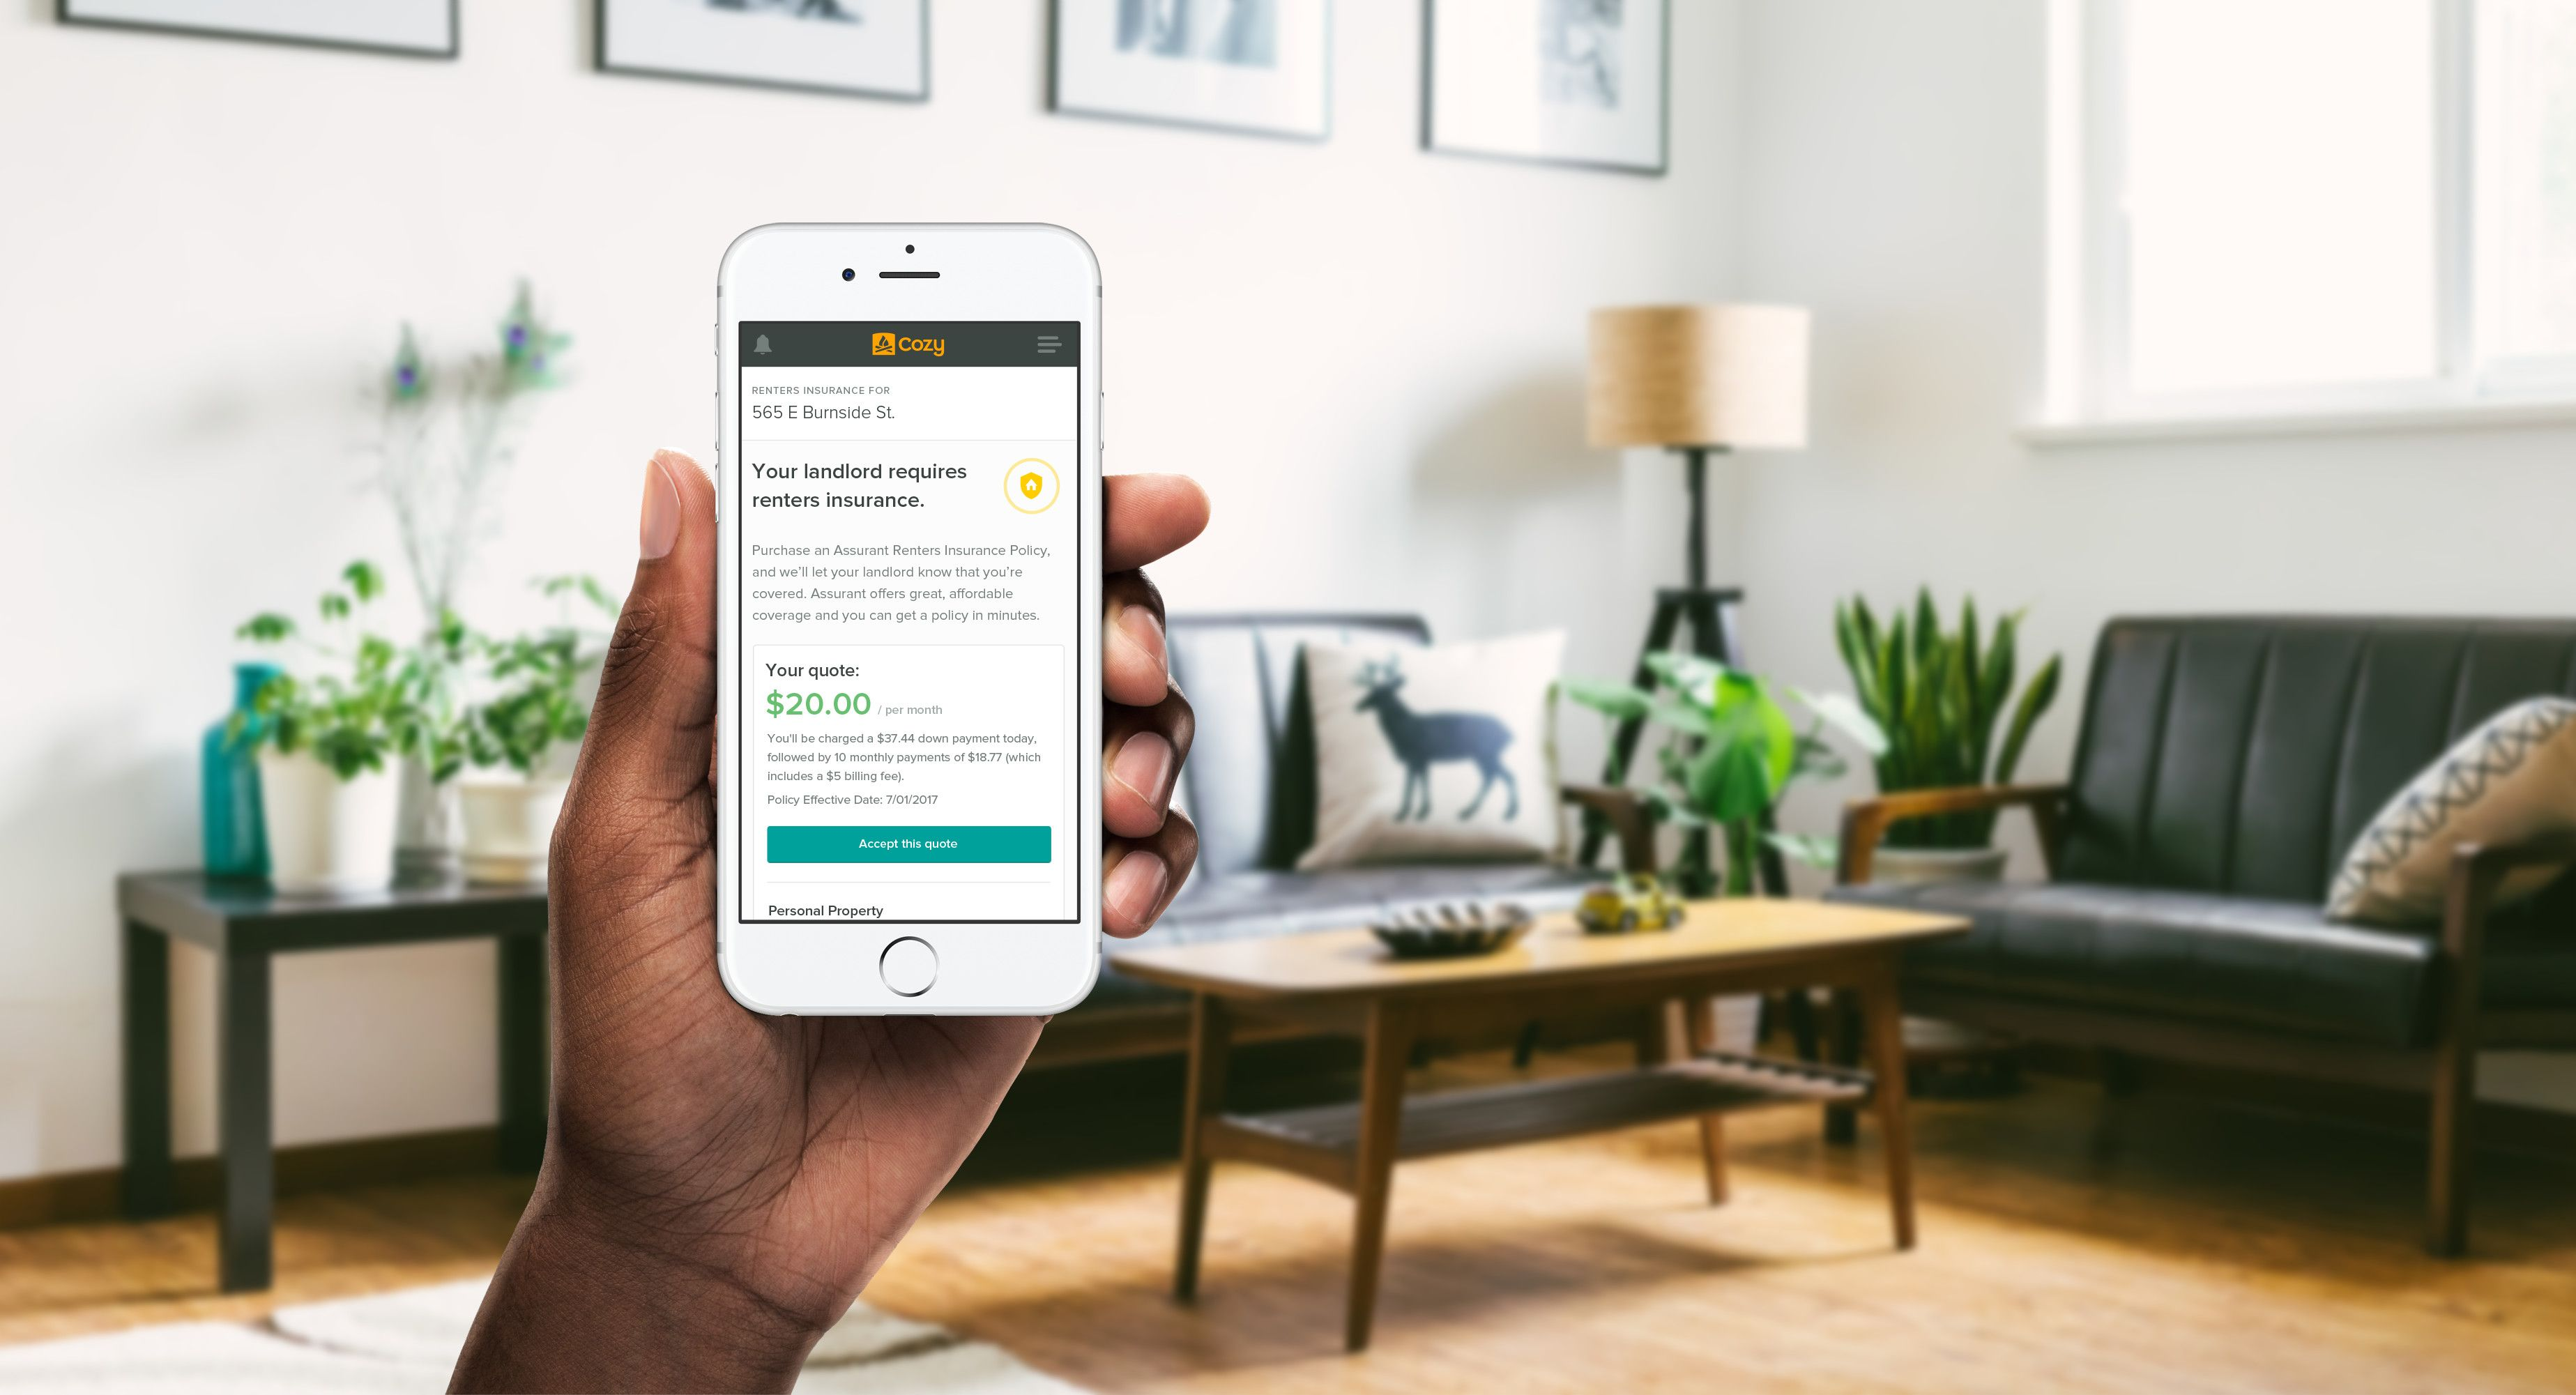 Cozy makes it easy for tenants to get renters insurance